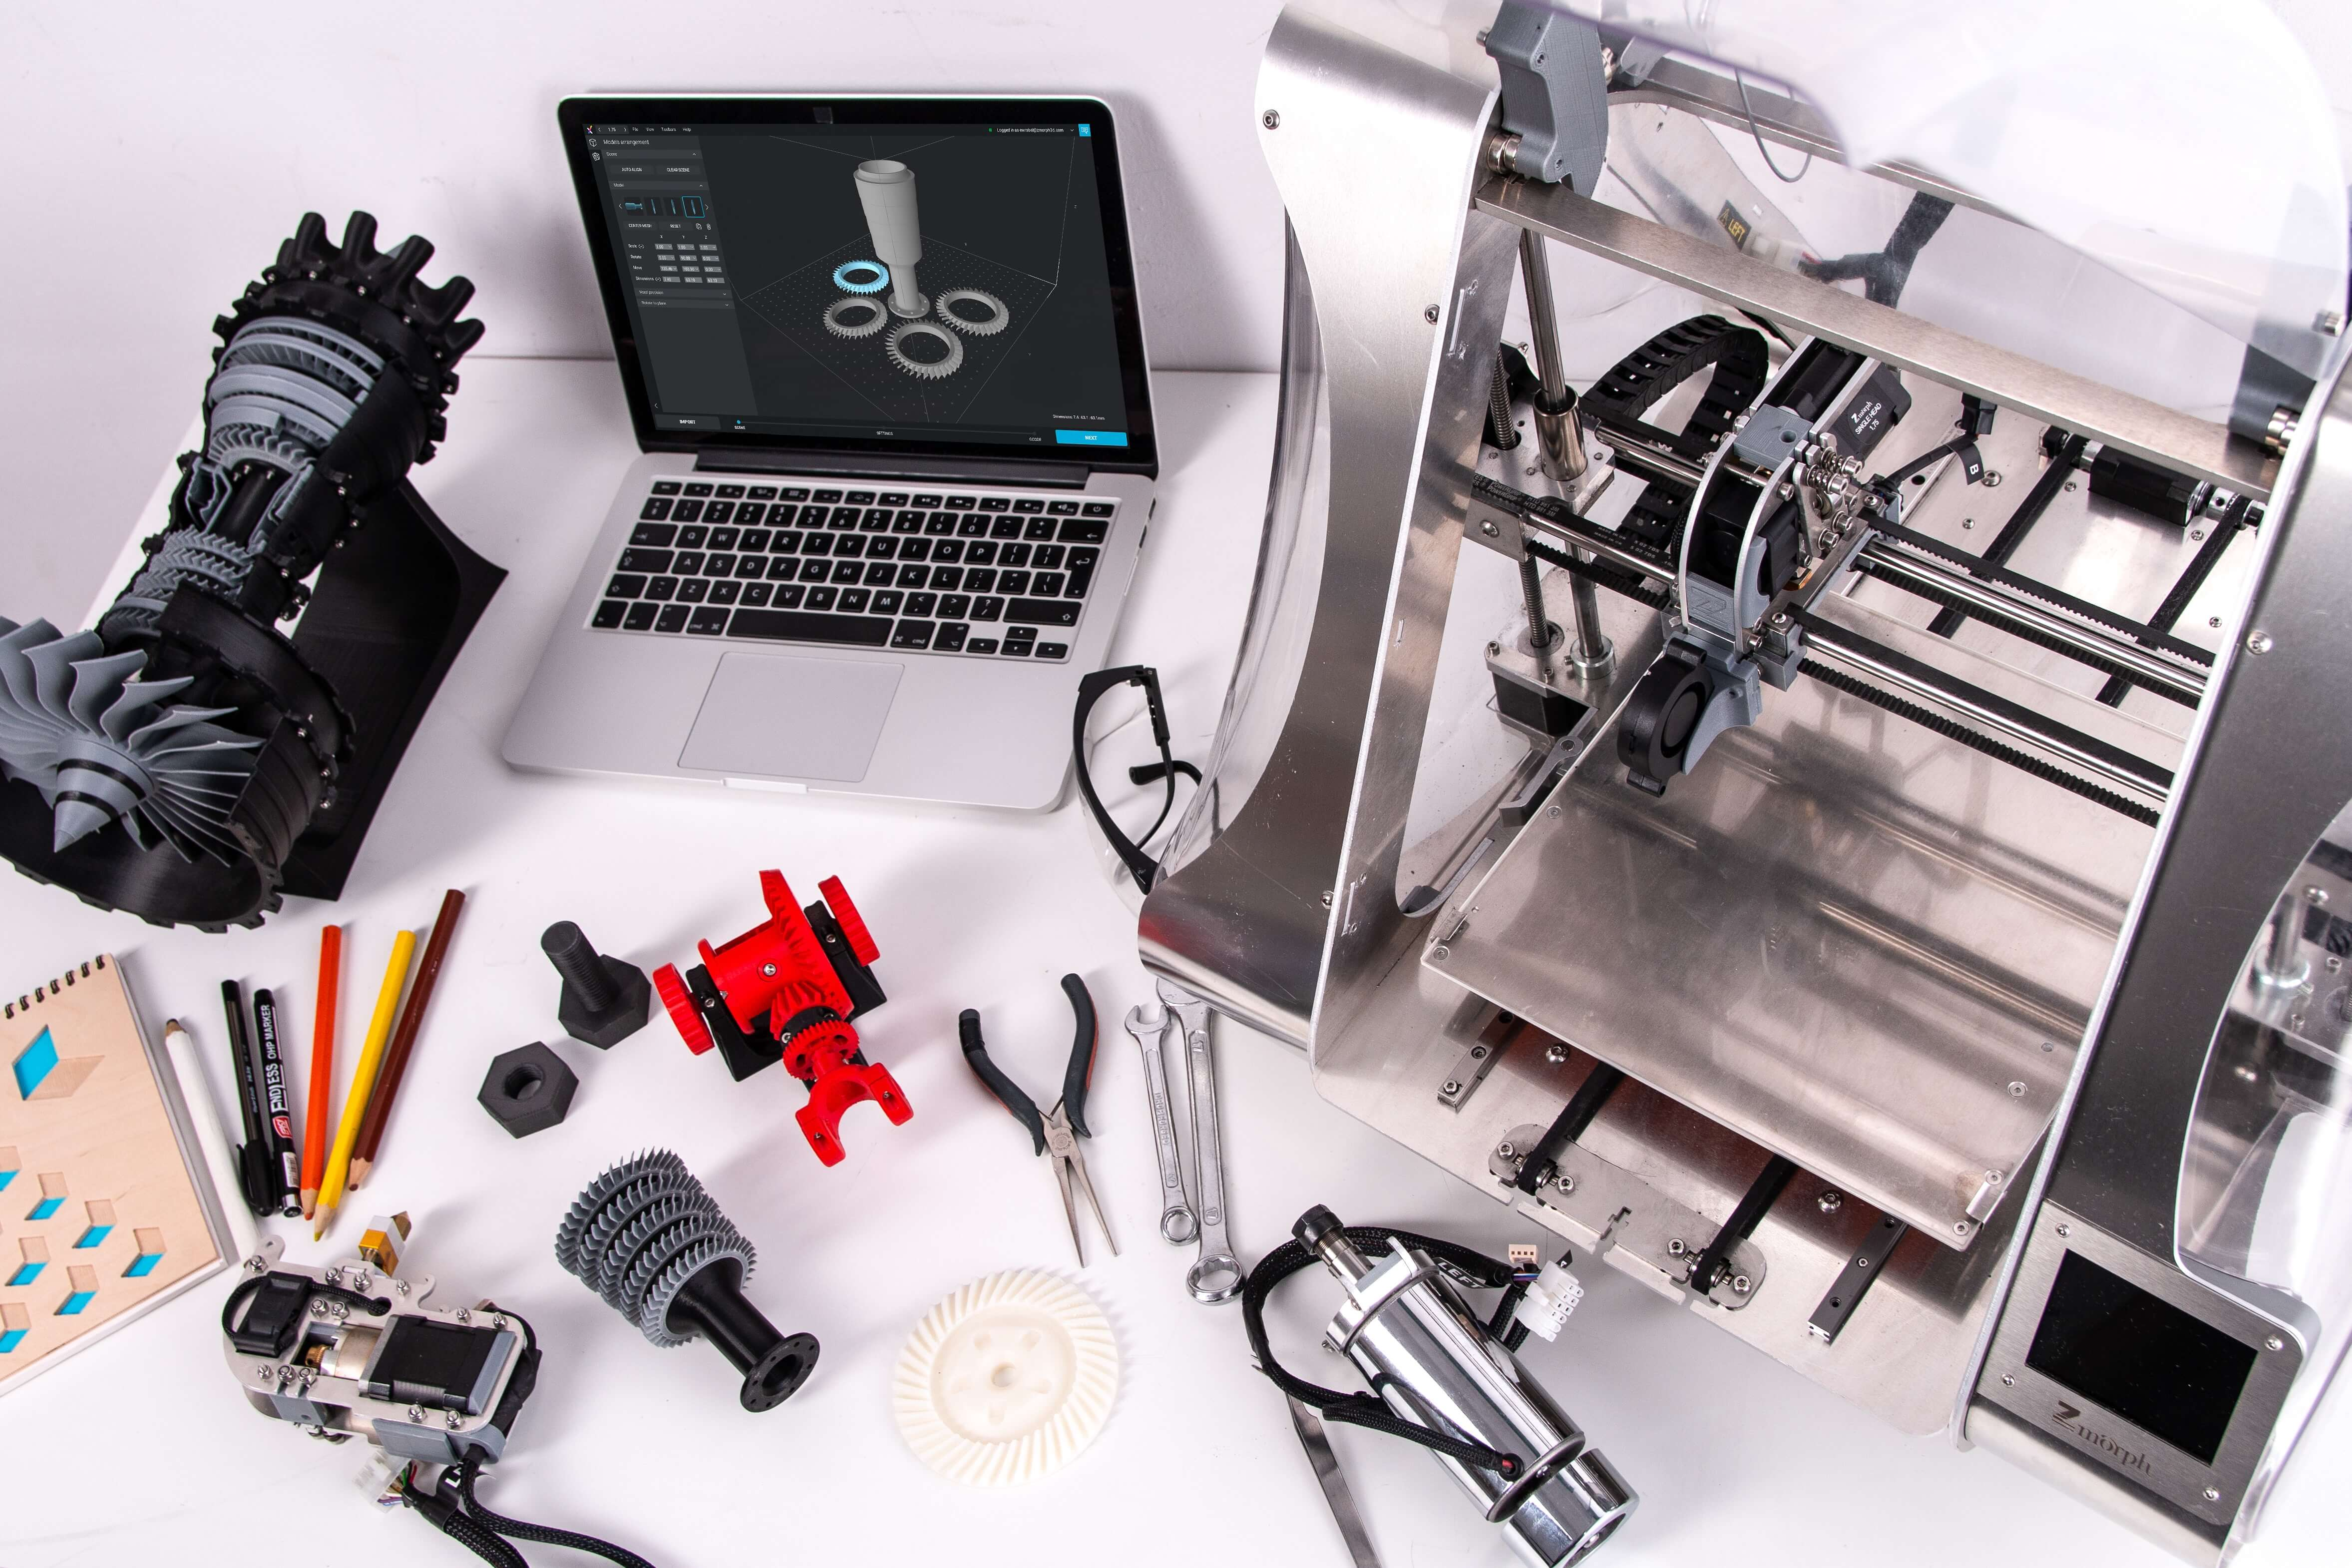 virtual manufacturing, 3d printing and other manufacturing technological trends